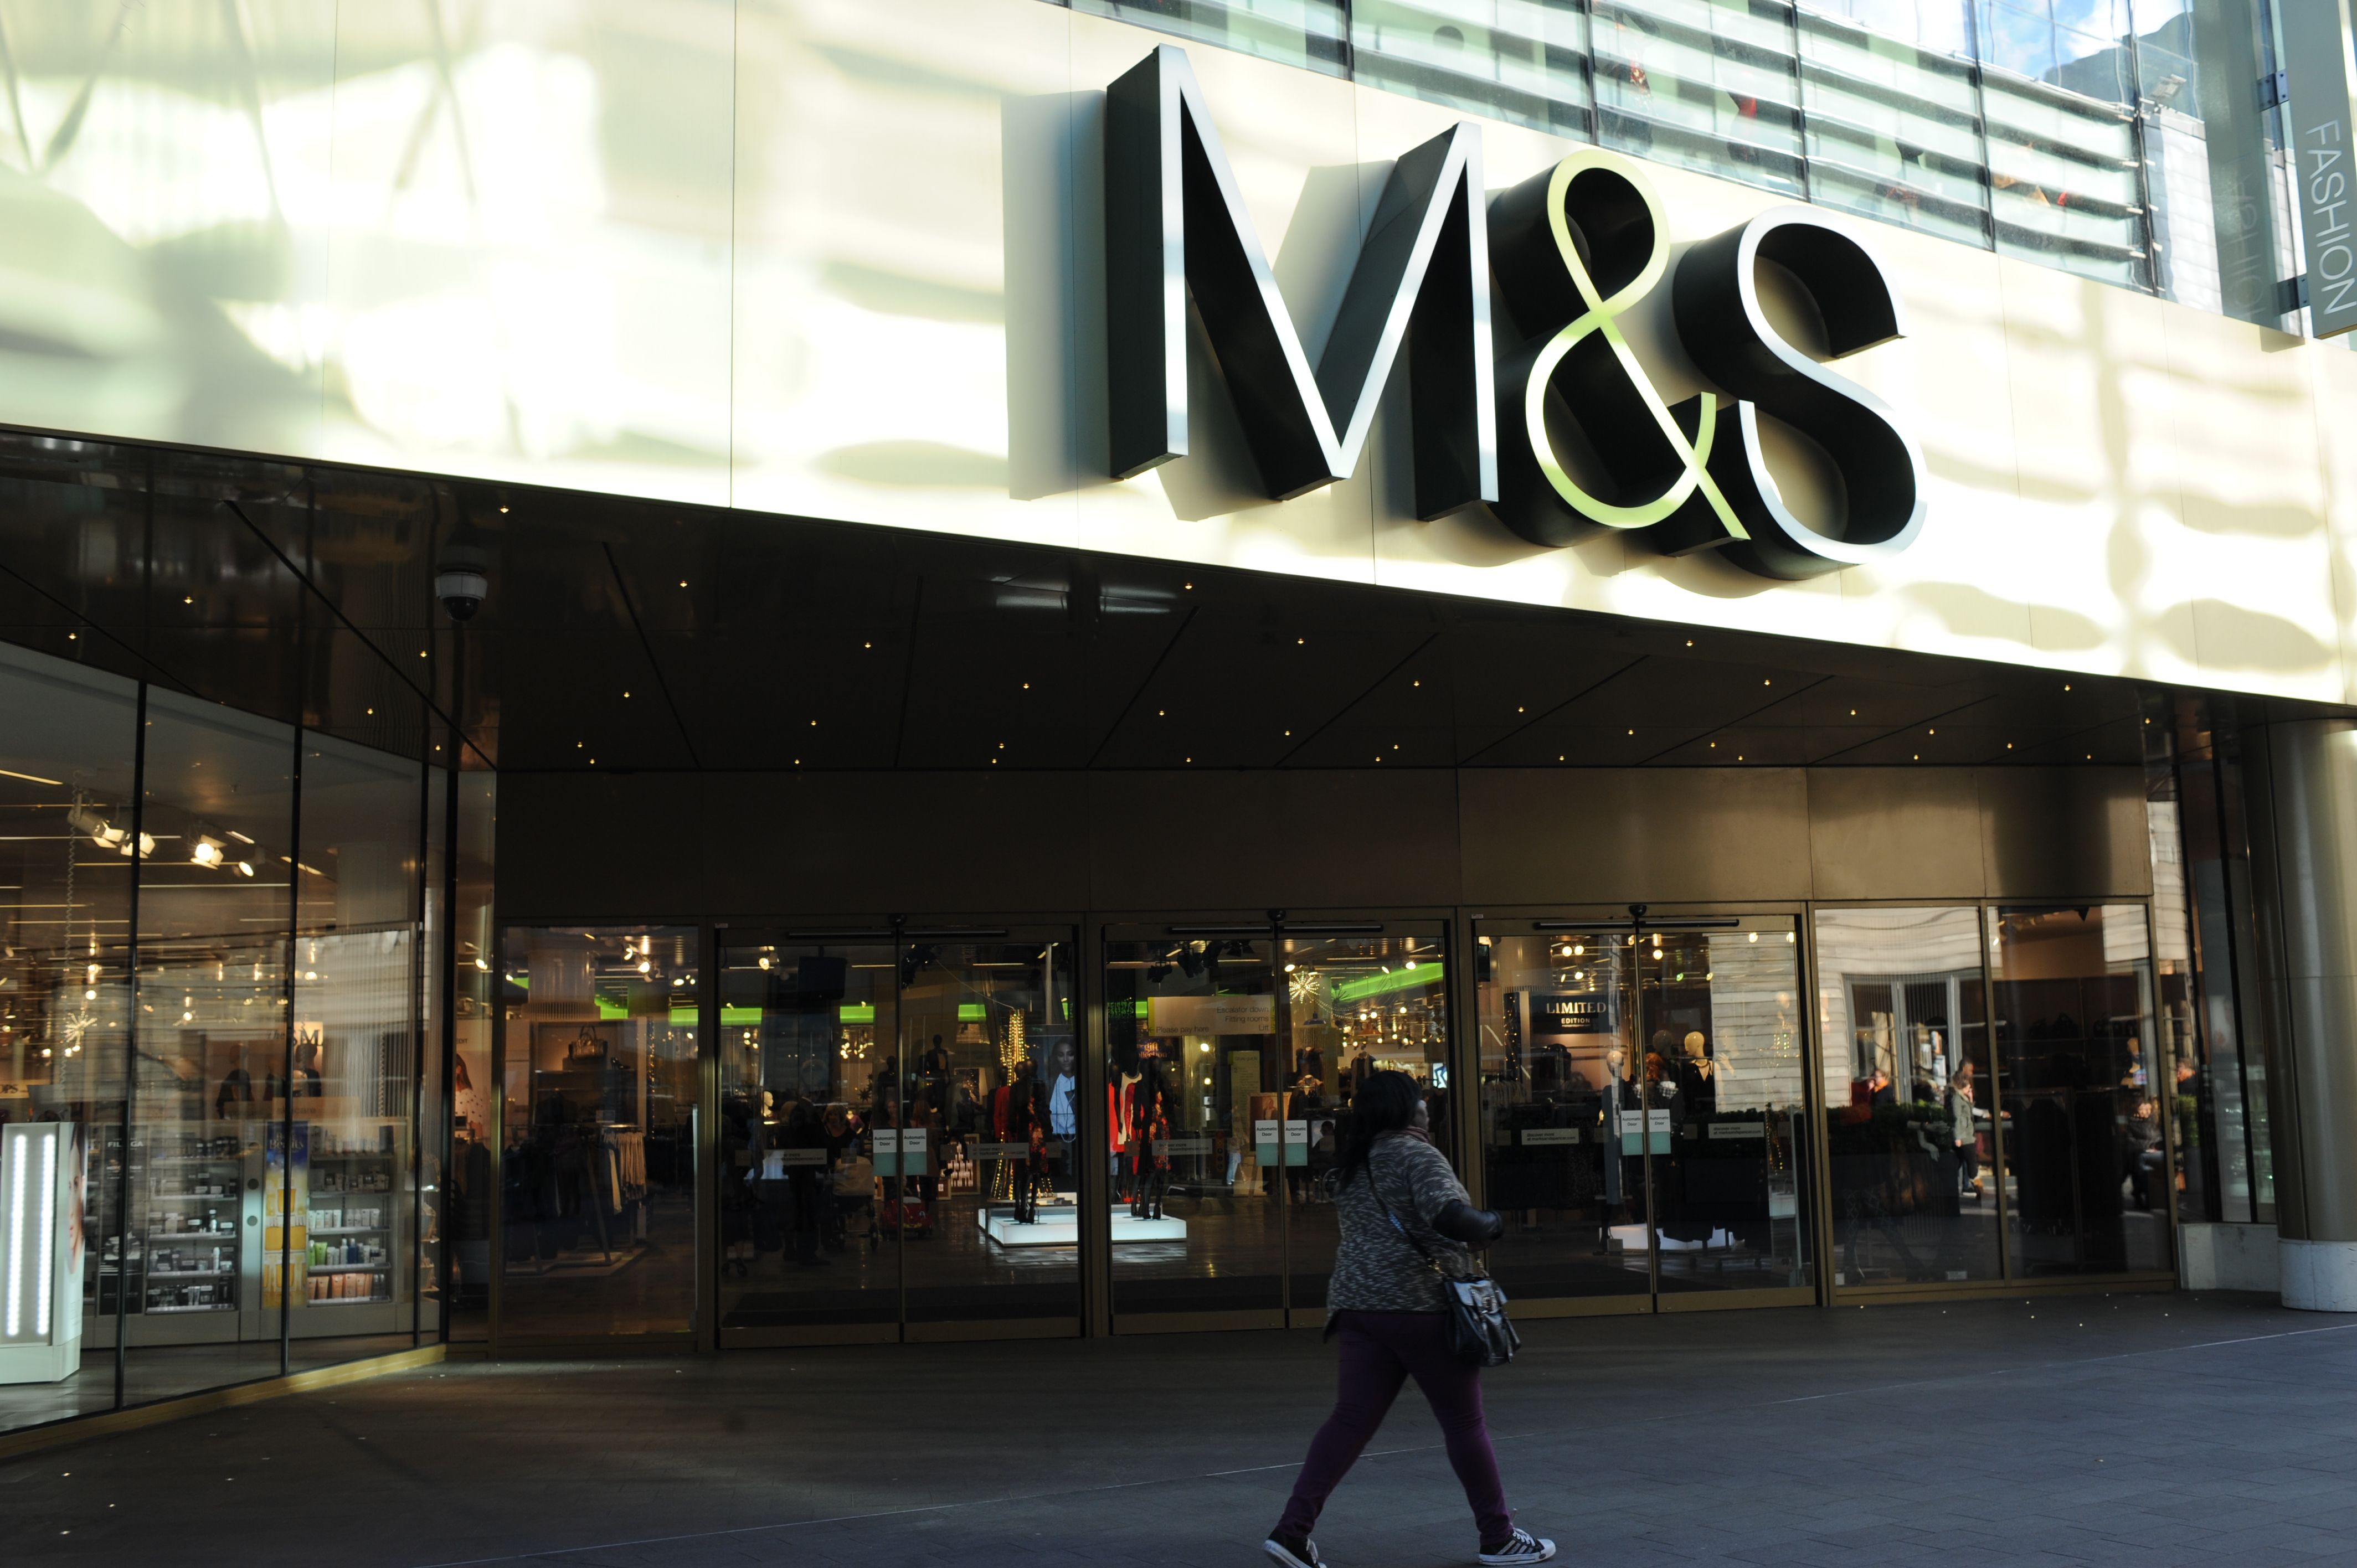 The Marks & Spencer store in London